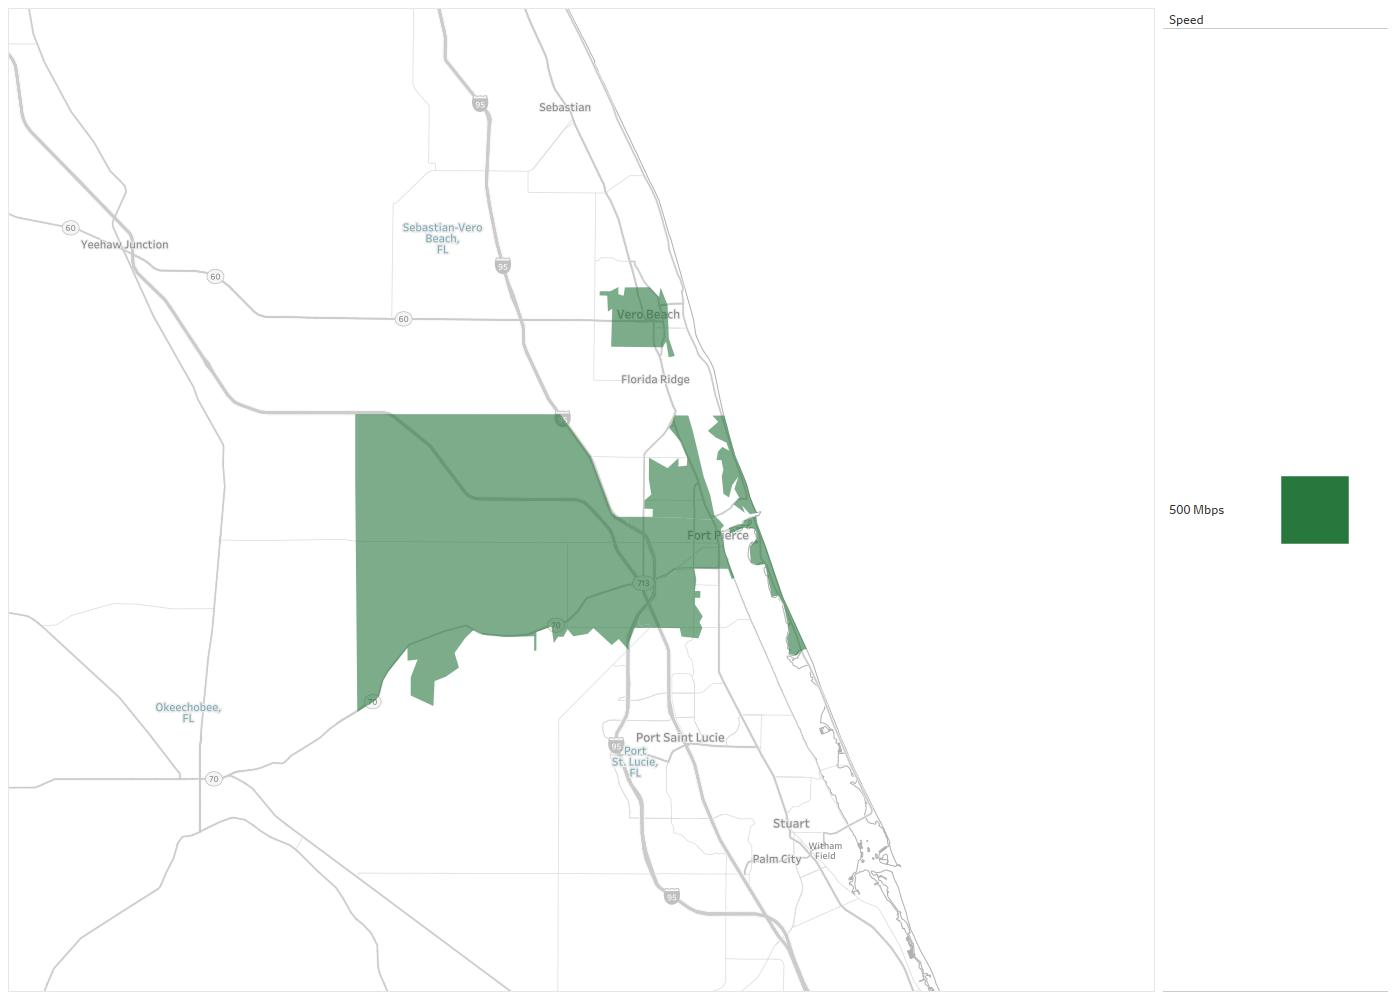 Map Of Fort Pierce Florida.Ft Pierce Utilities Authority Availability Areas Coverage Map